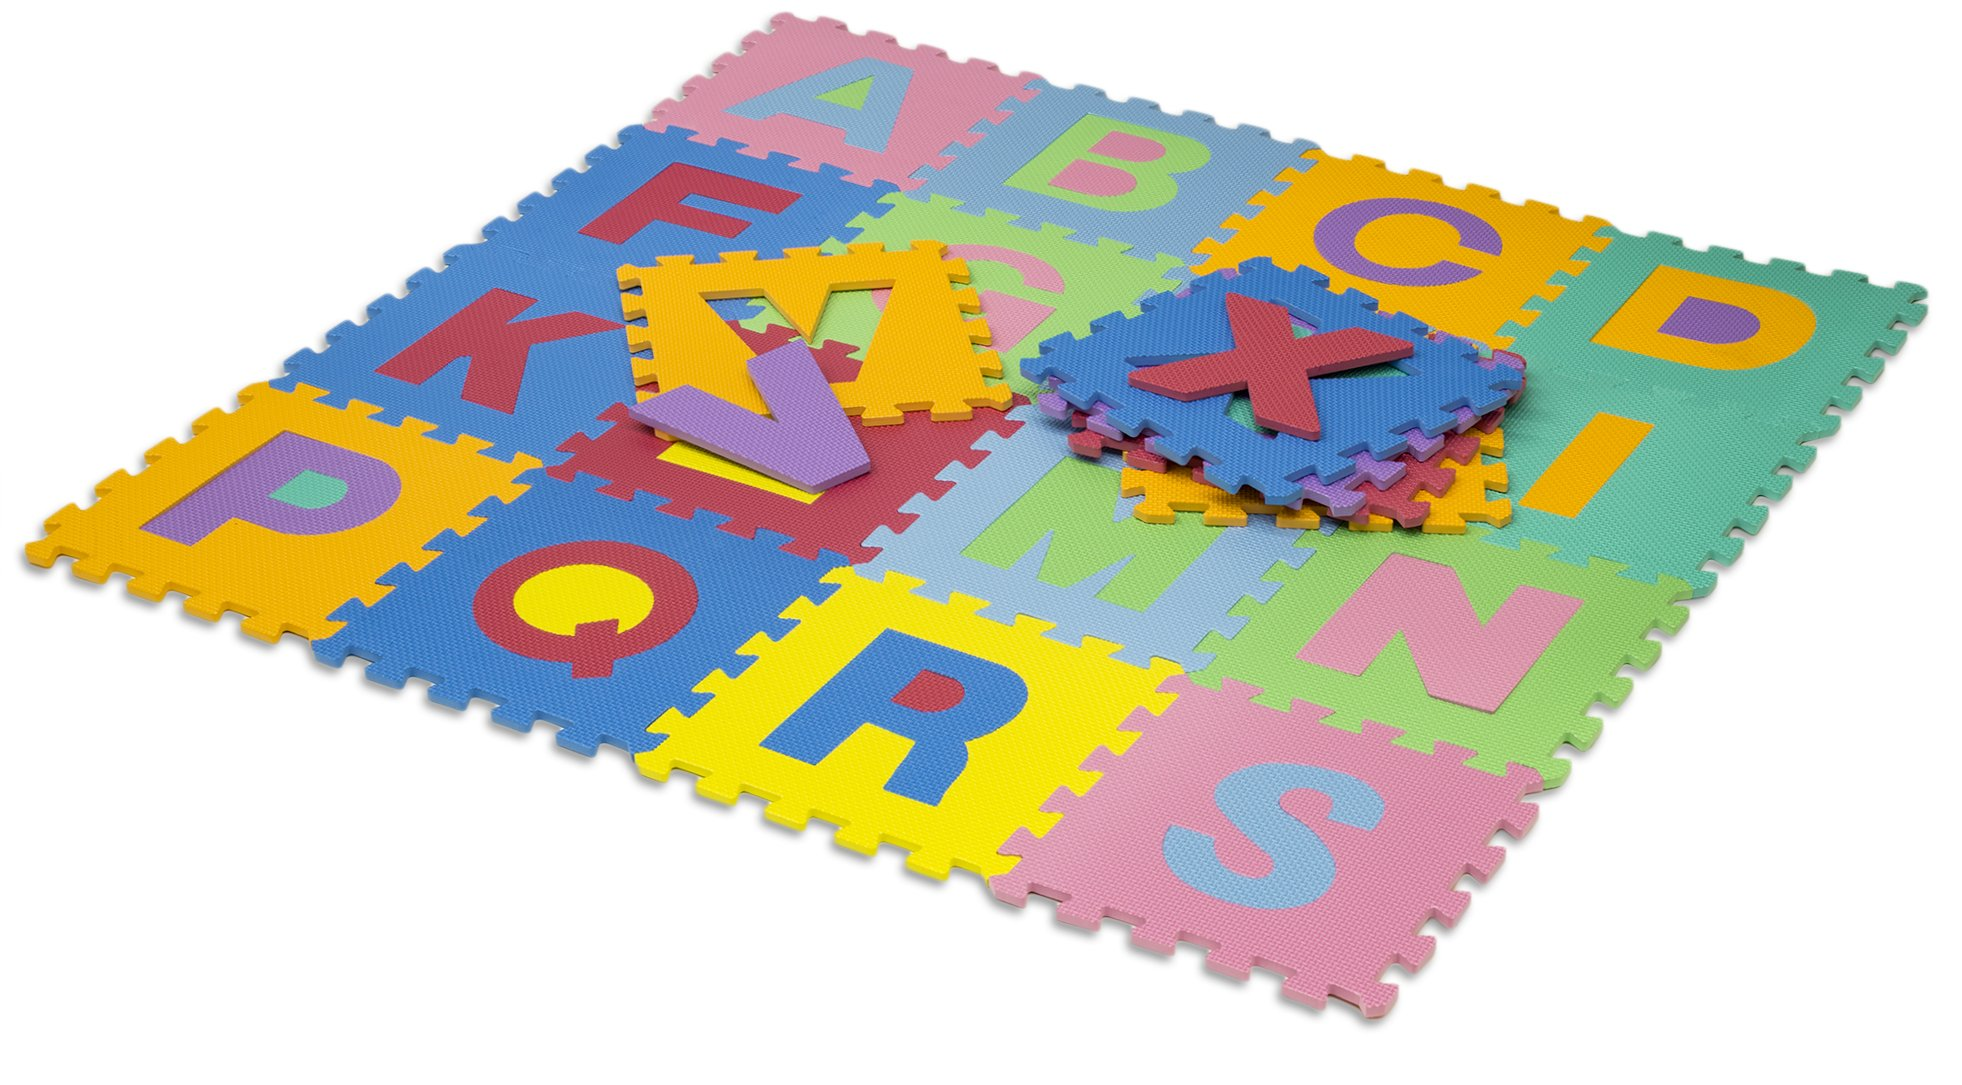 HemingWeigh Kids Multicolored Alphabet Puzzle Play Mat - 26 Tiles - Soft and Safe EVA Foam - Excellent for Day Care's, Play Rooms, Baby Rooms, and playgrounds